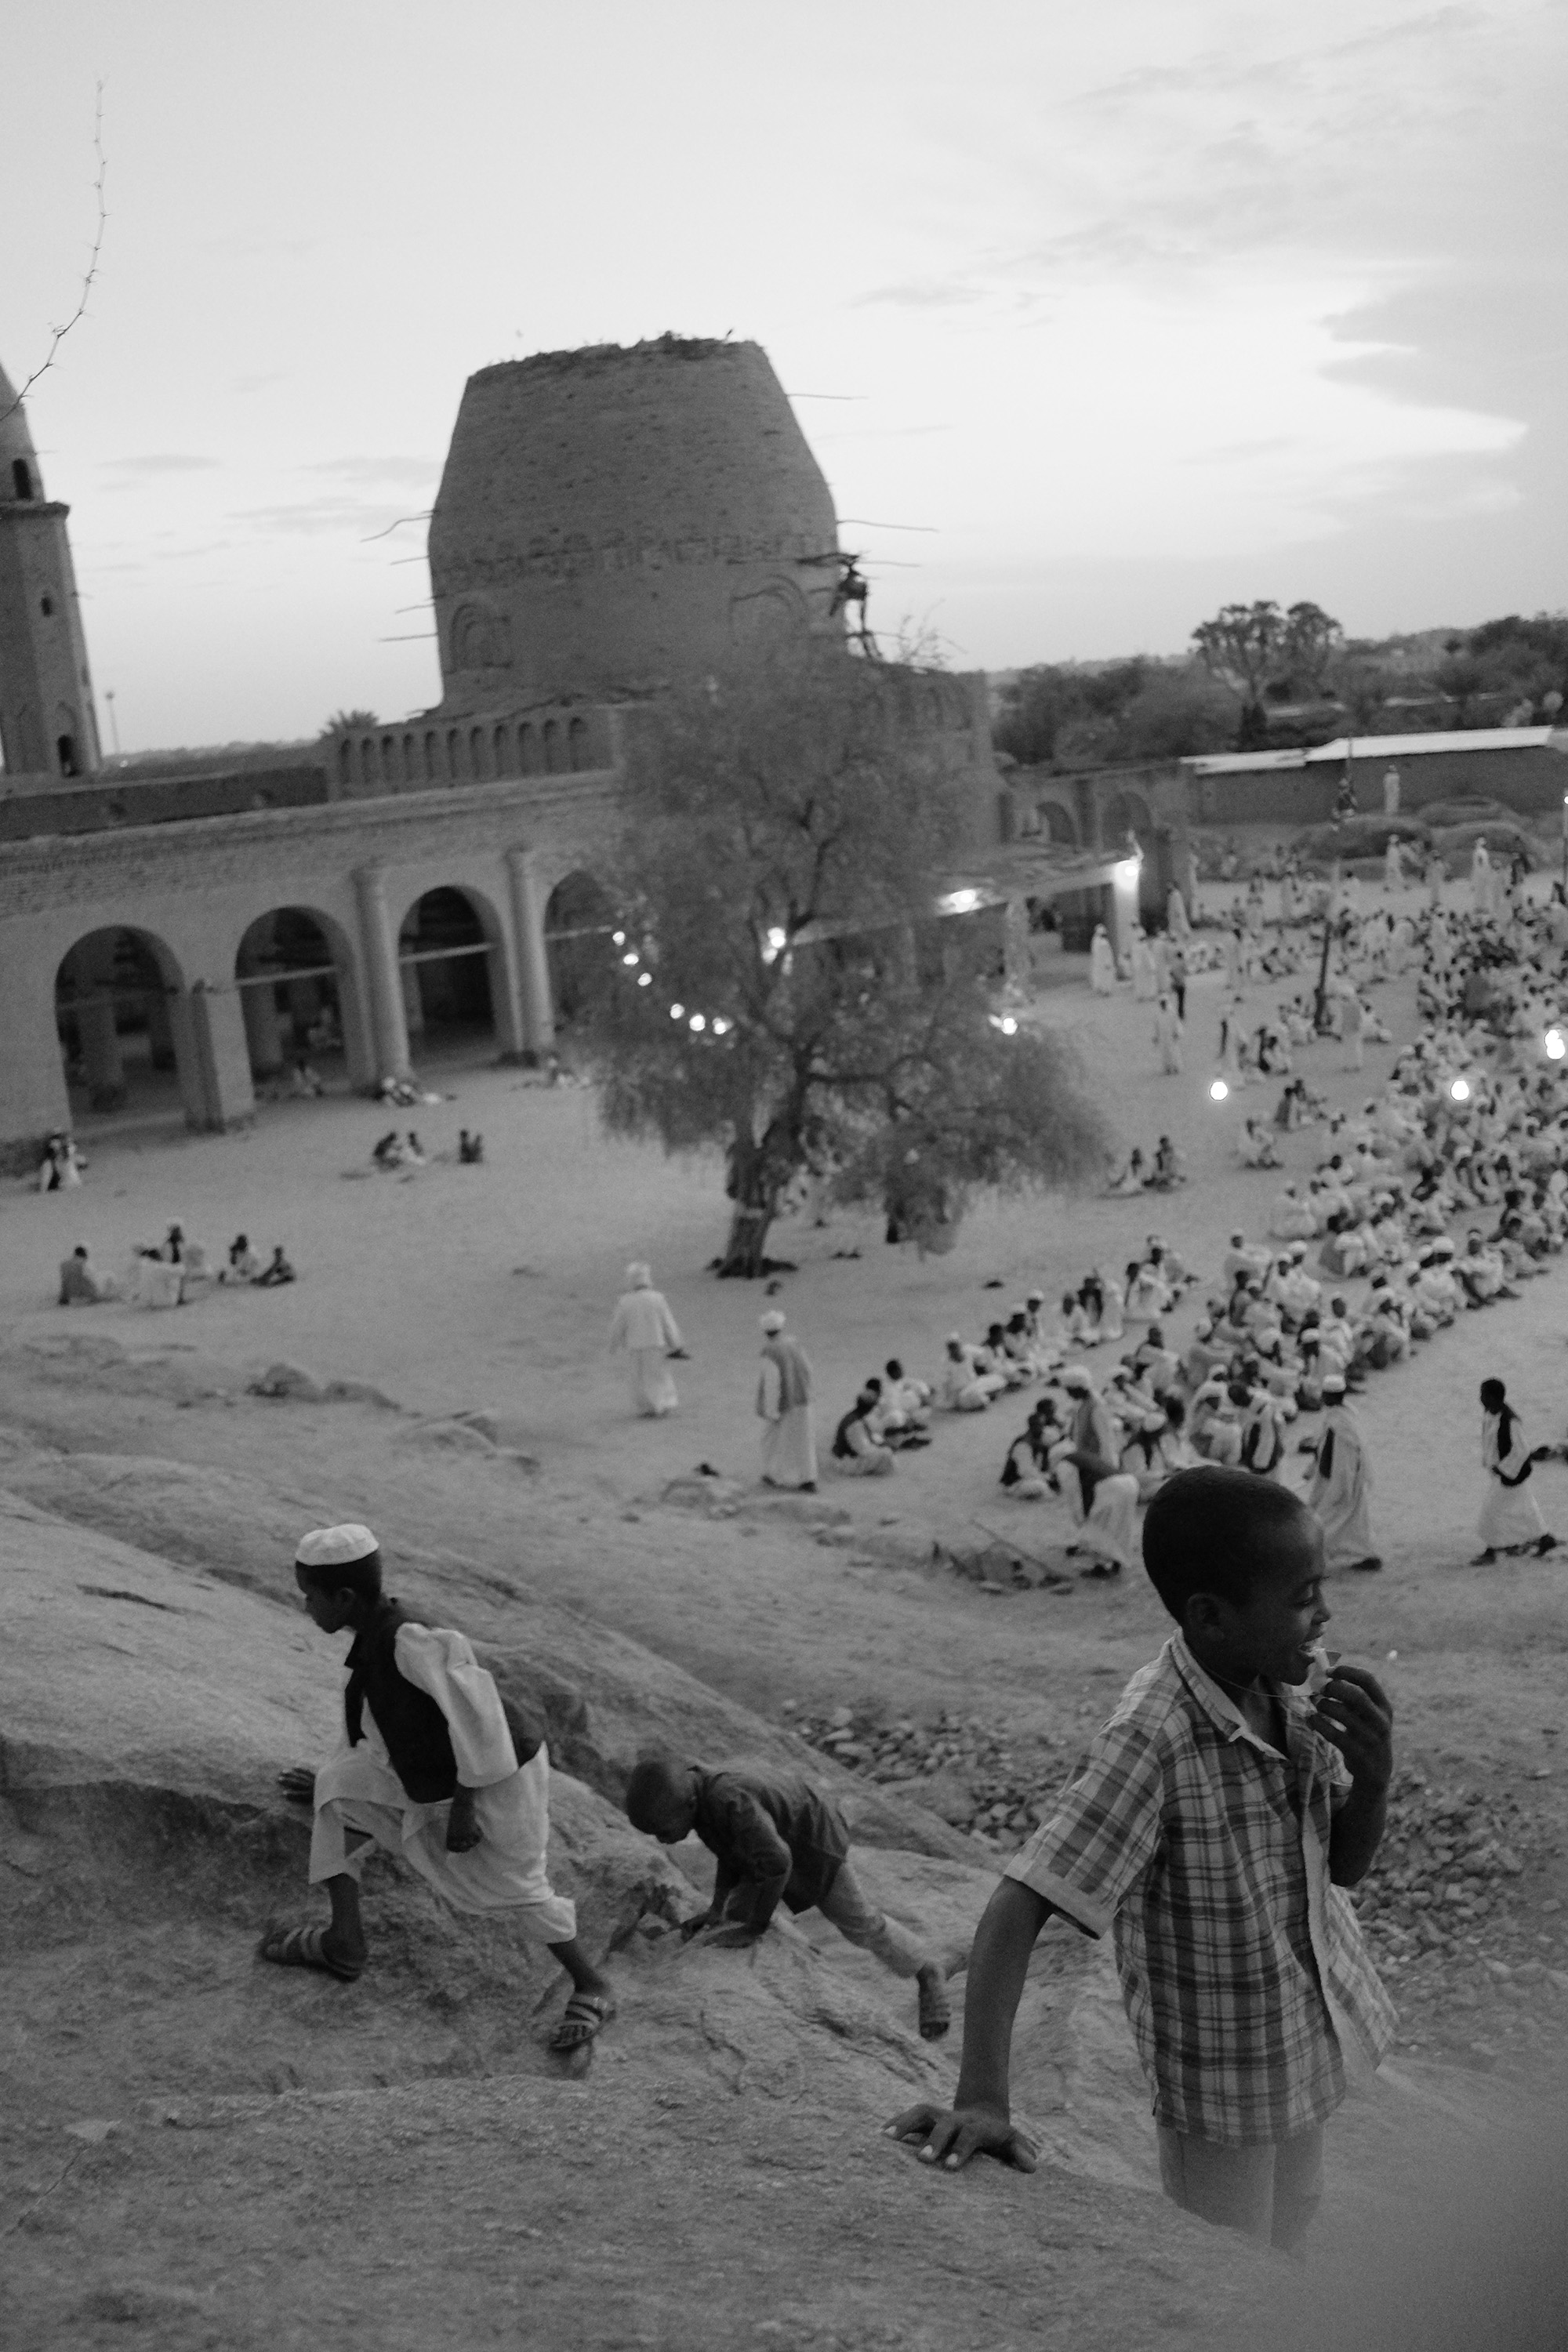 25. Kids play while the elders pray. Kassala. Sudan. 2017